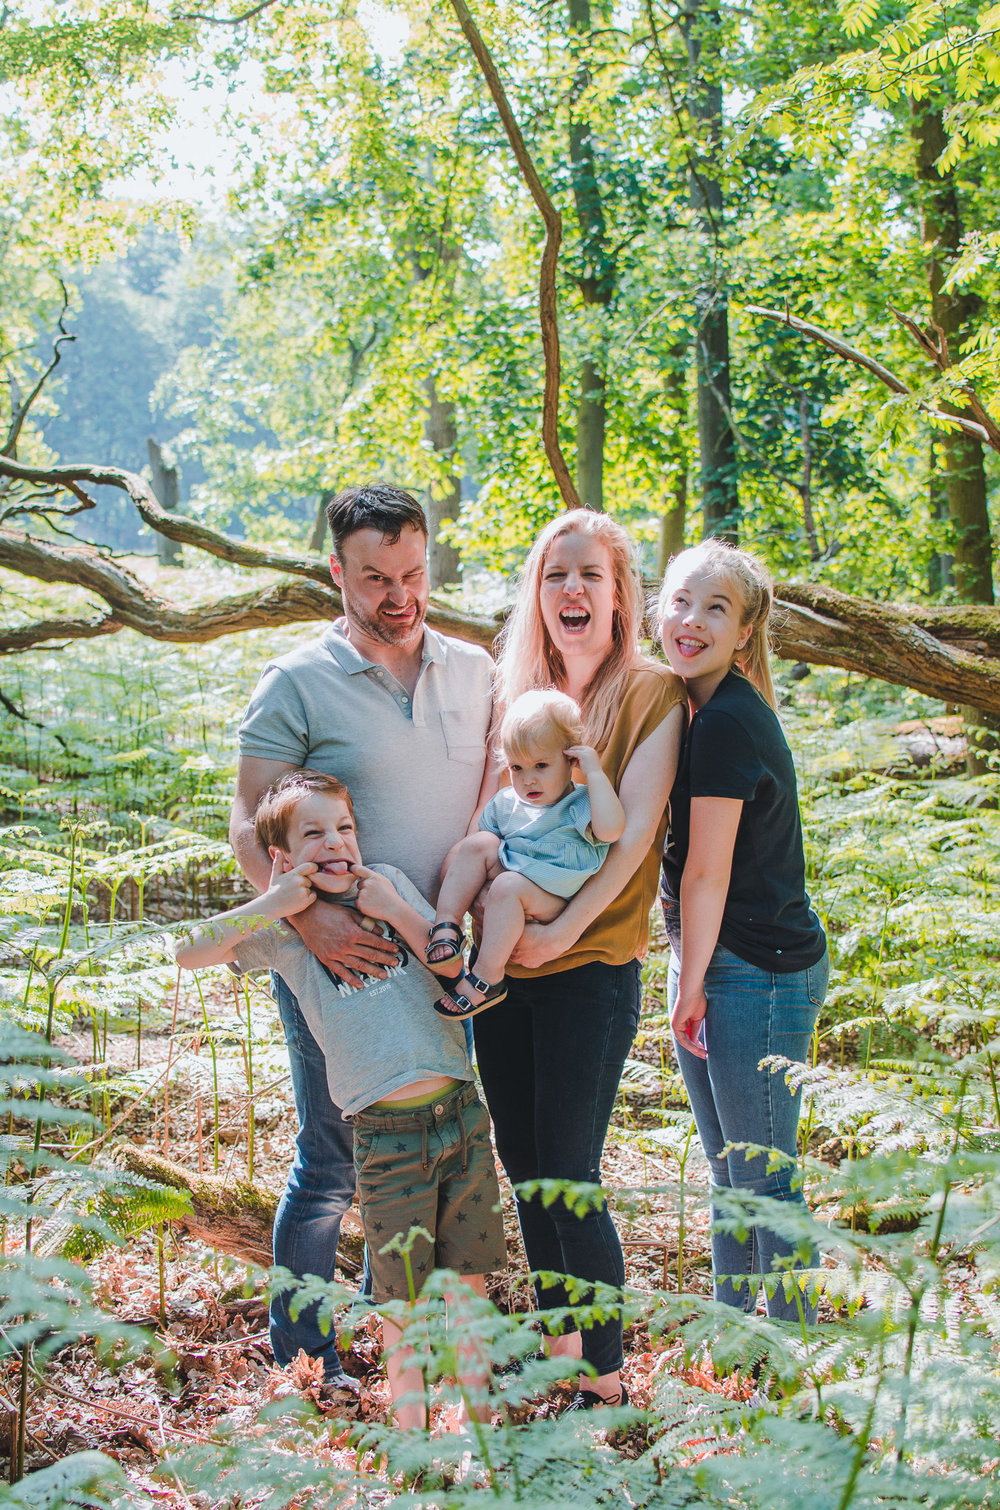 Vicky_McLachlan_Photography_Family_Newborn_Lifestyle_Photographer-1-6.jpg